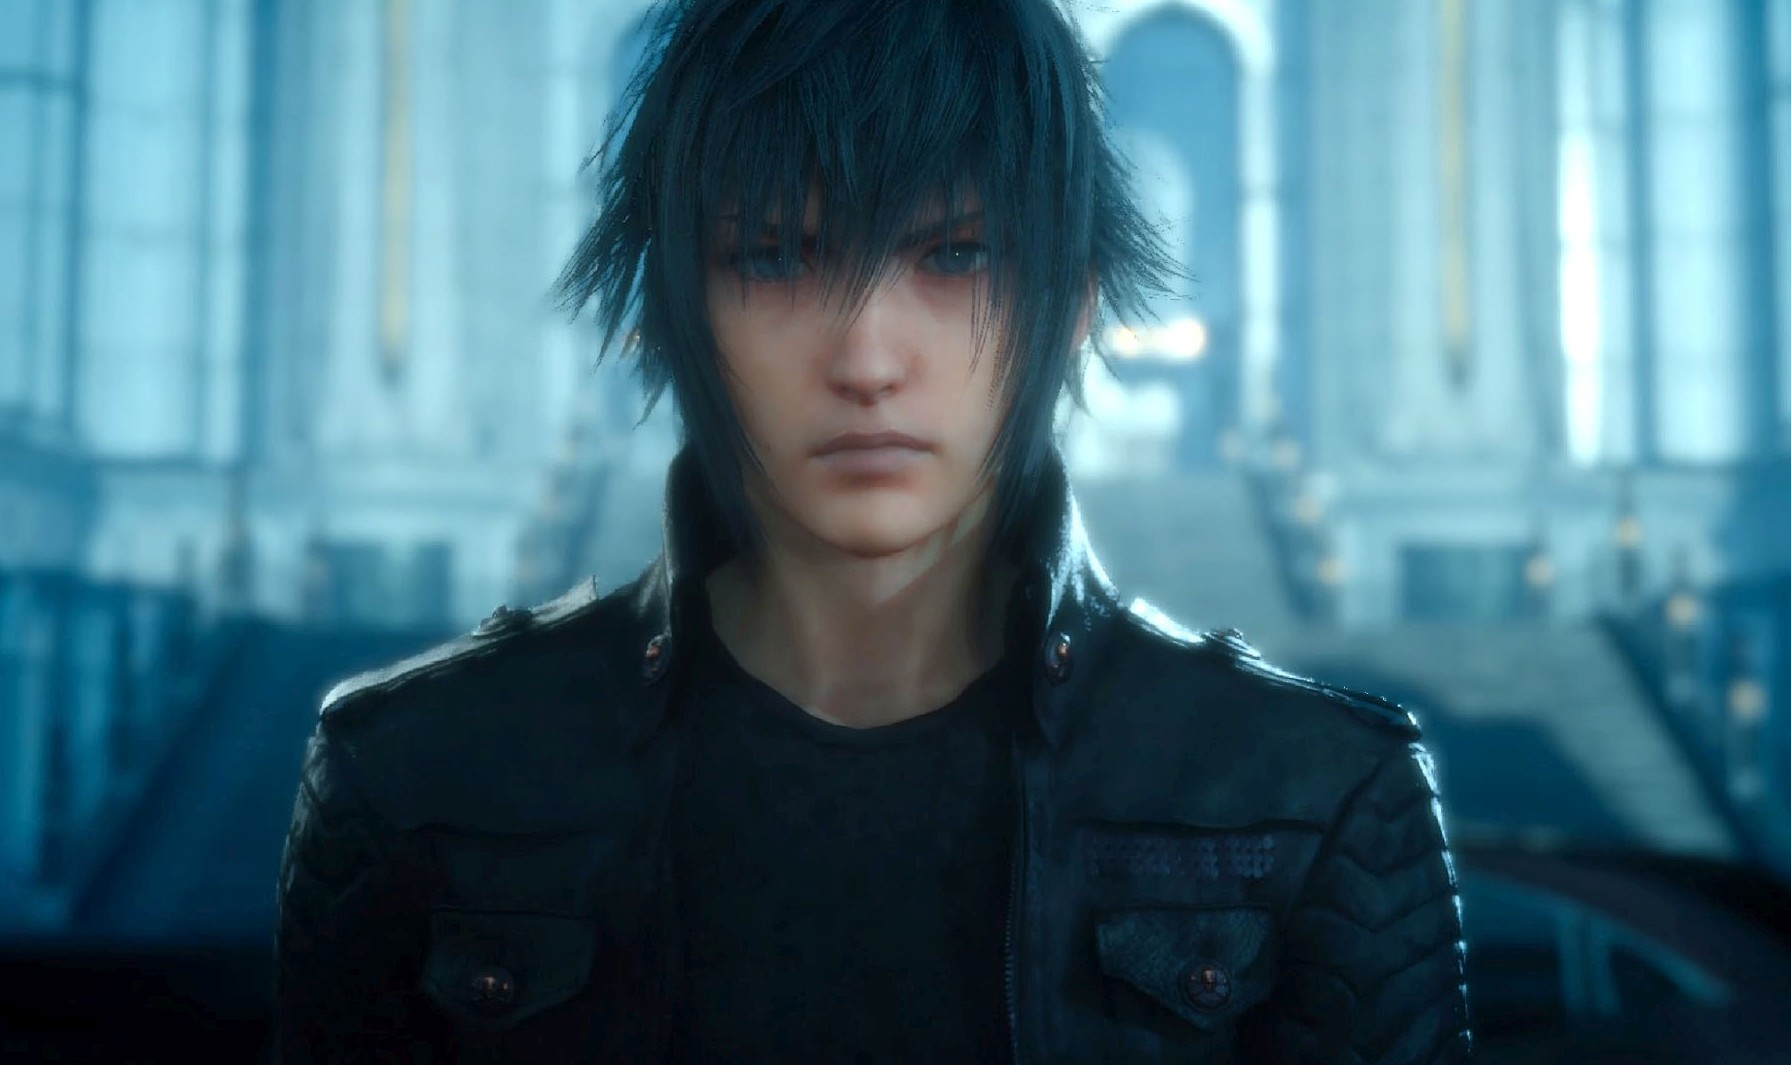 Final Fantasy XV free demo is available on Windows 10